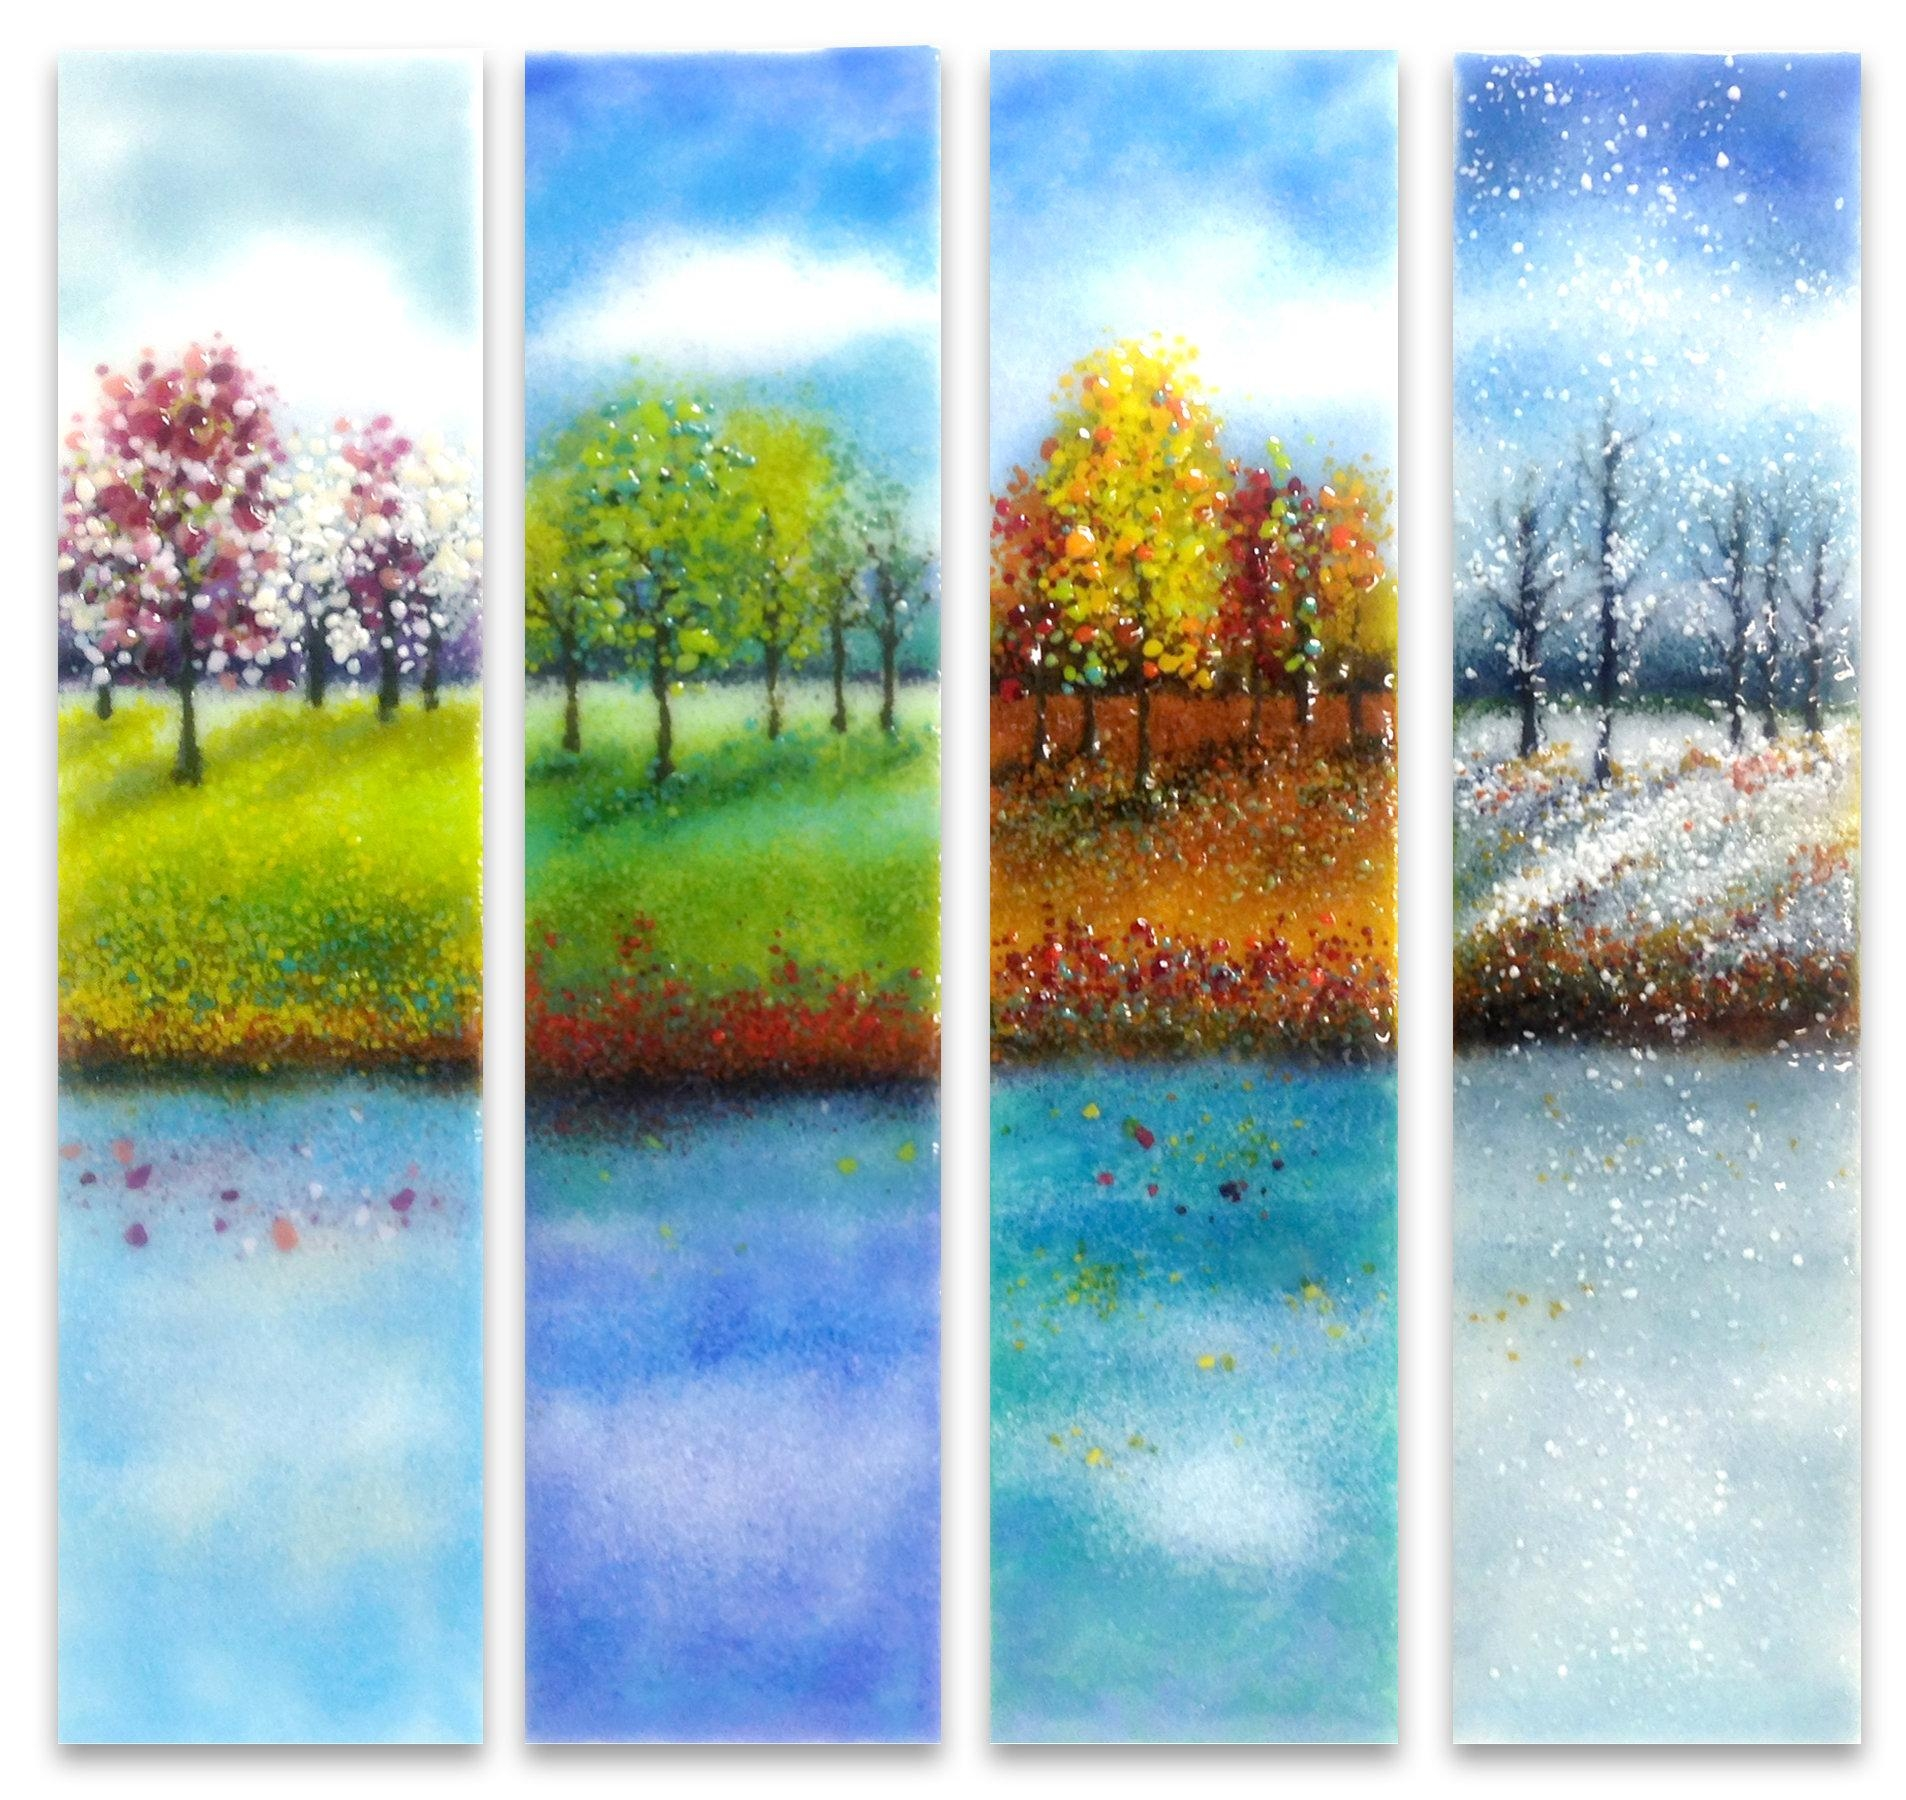 Anne Nye (Anne Nye Glass) Artist Profile | Artful Home With Fused Glass Wall Artwork (View 20 of 20)